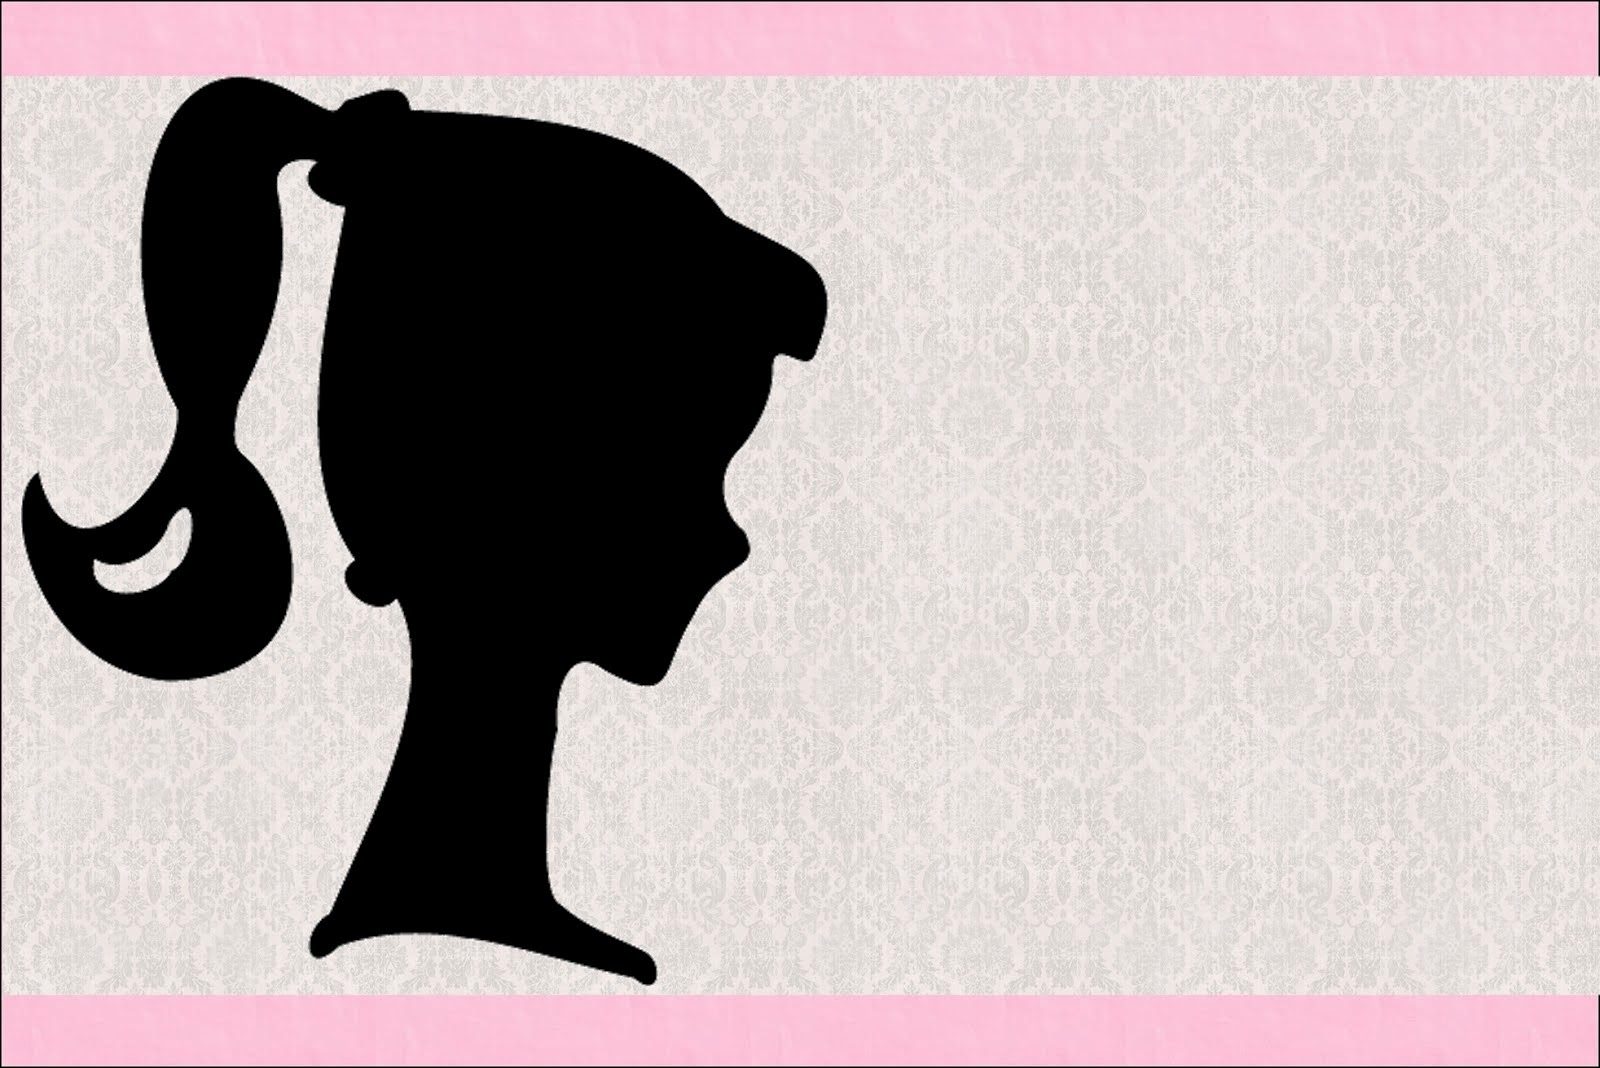 image regarding Free Printable Silhouettes identify Barbie Silhouette: No cost Printable Invites. - Oh My